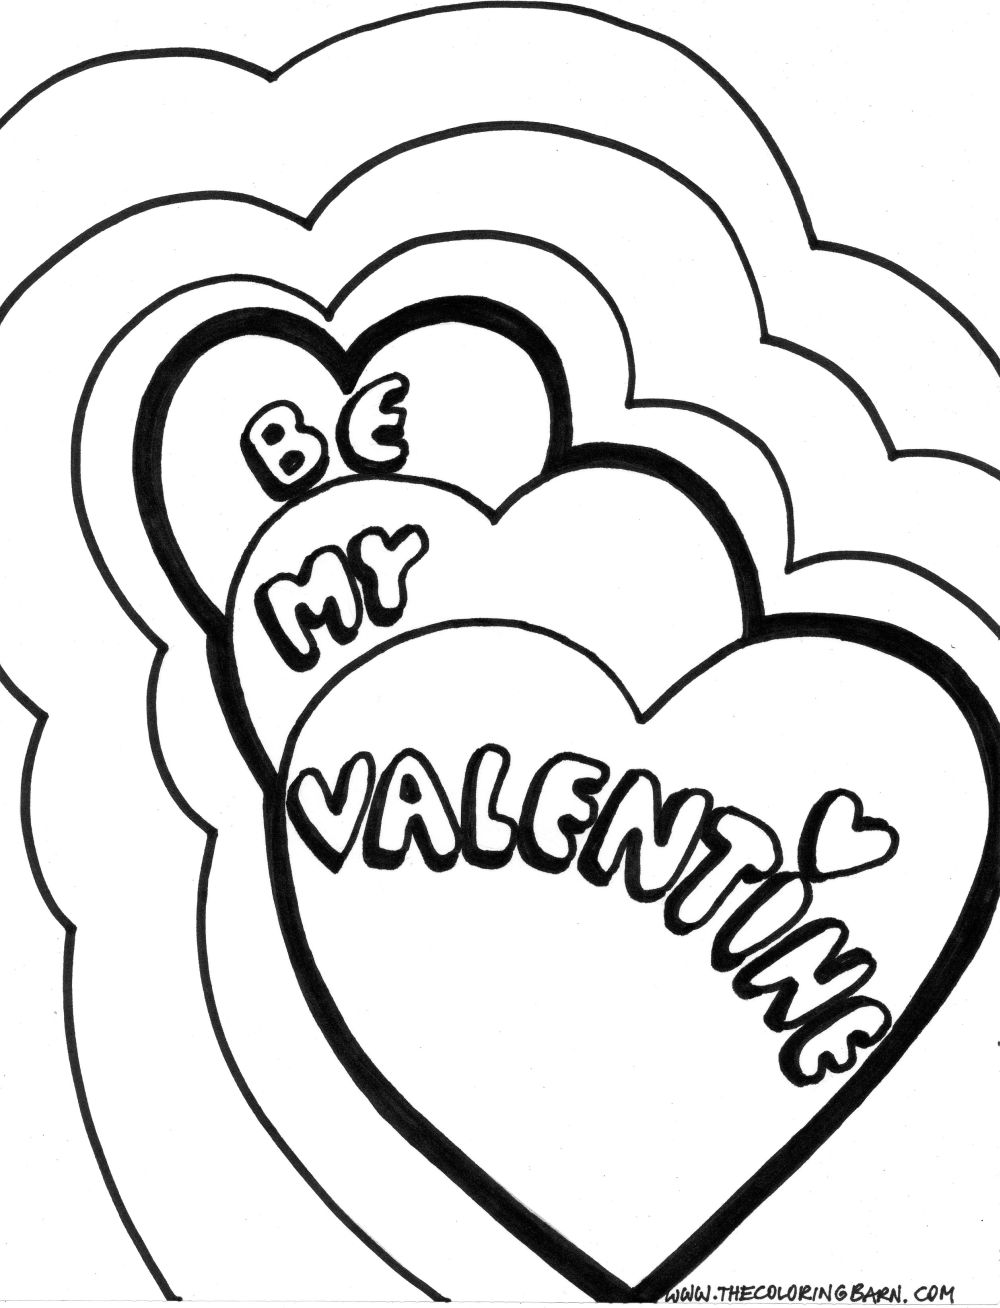 valentine online coloring pages - photo#20